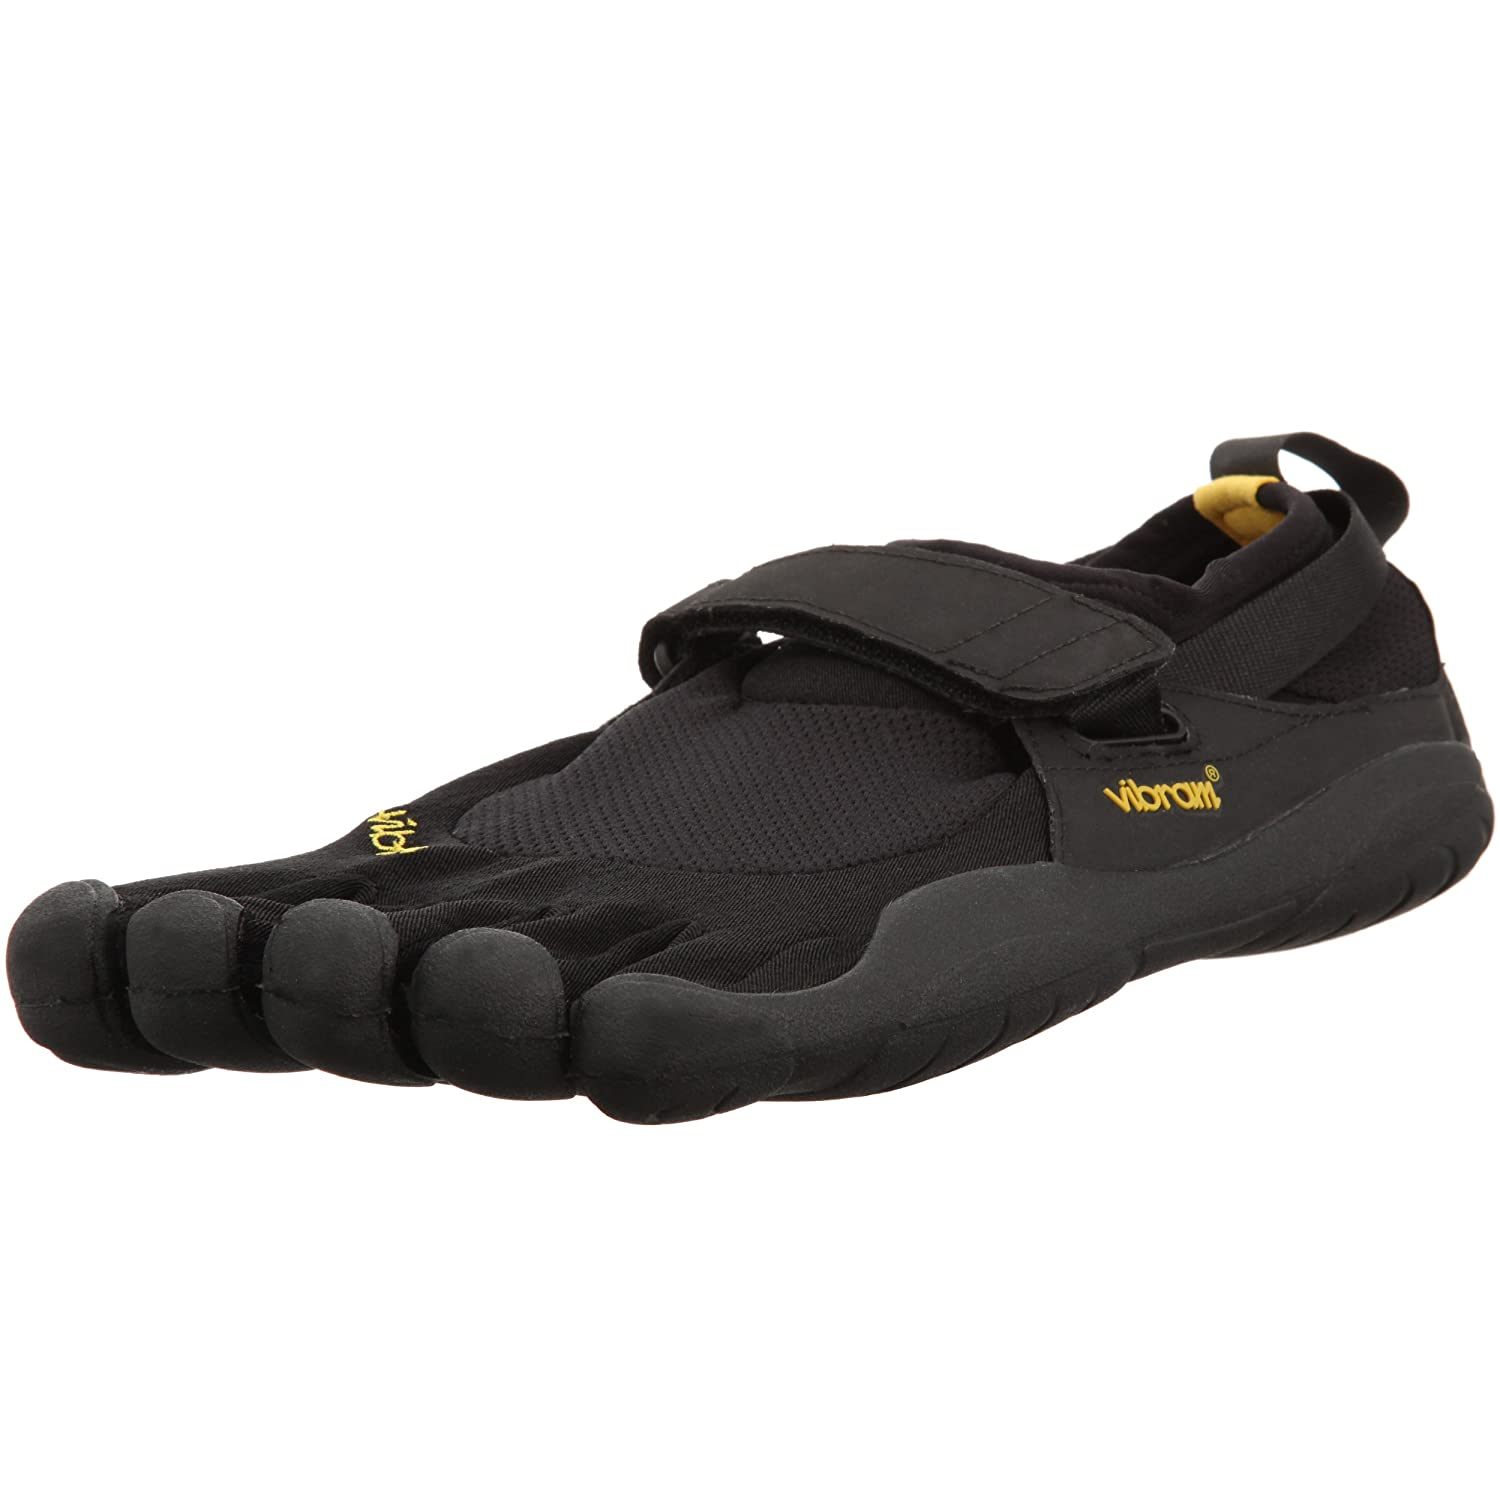 Five Finger Shoes Online Shopping In India